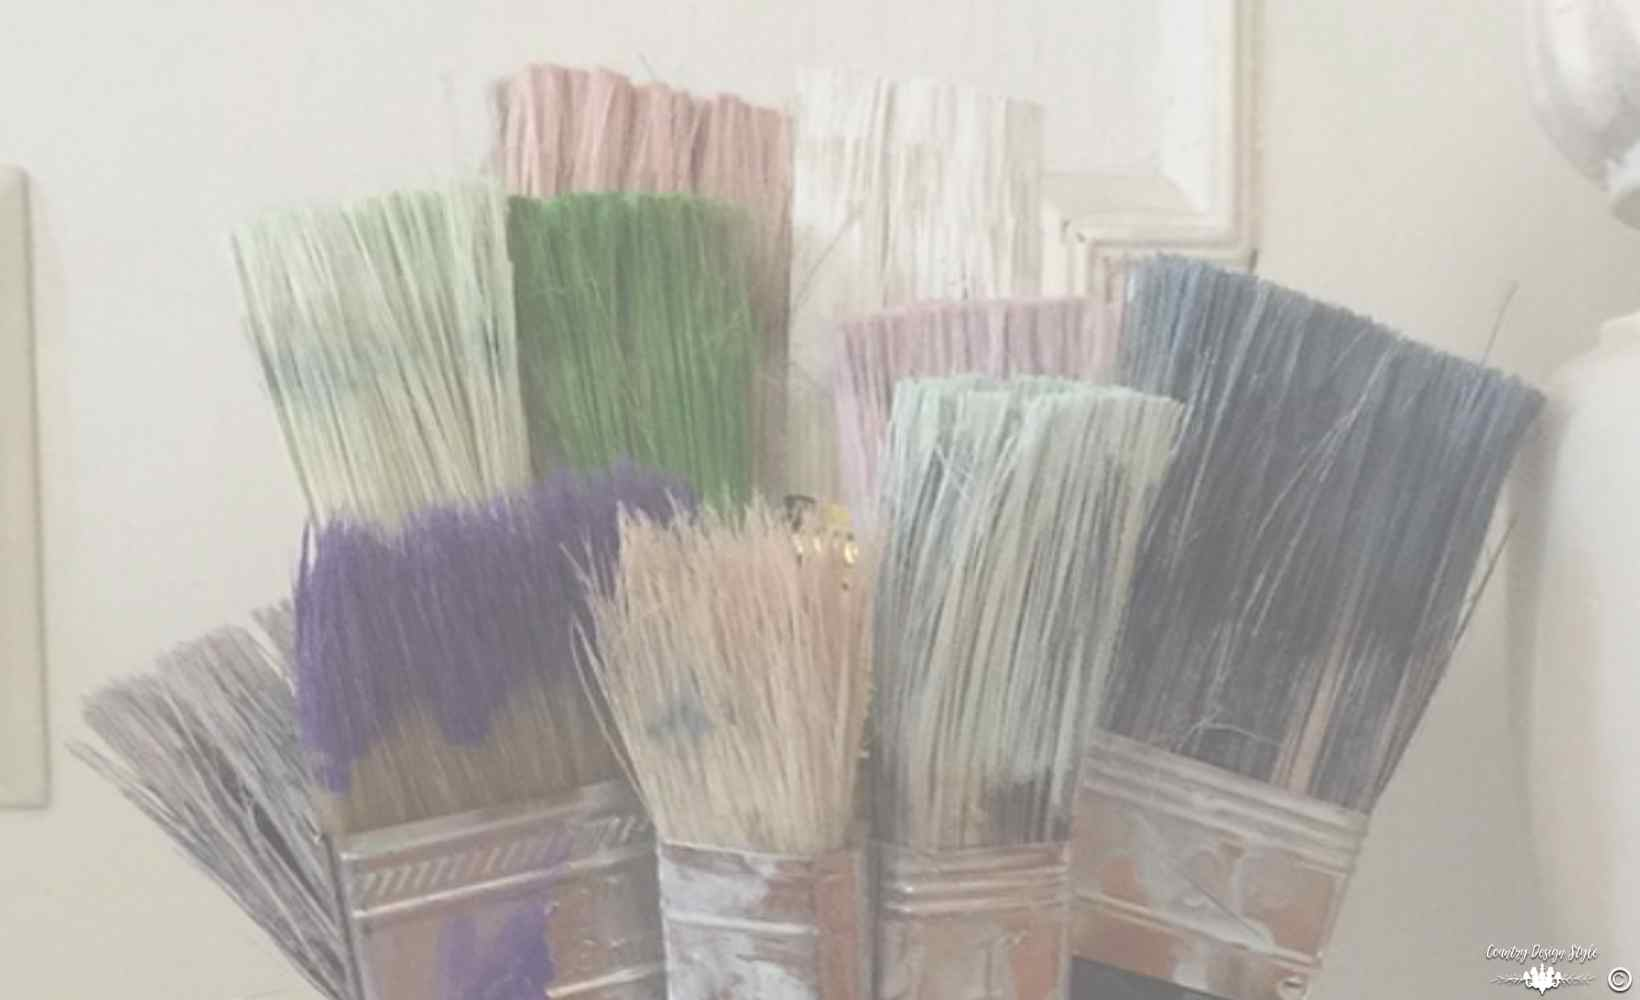 Cheap Paint Brushes Bouquet main soft | Country Design Style | countrydesignstyle.com